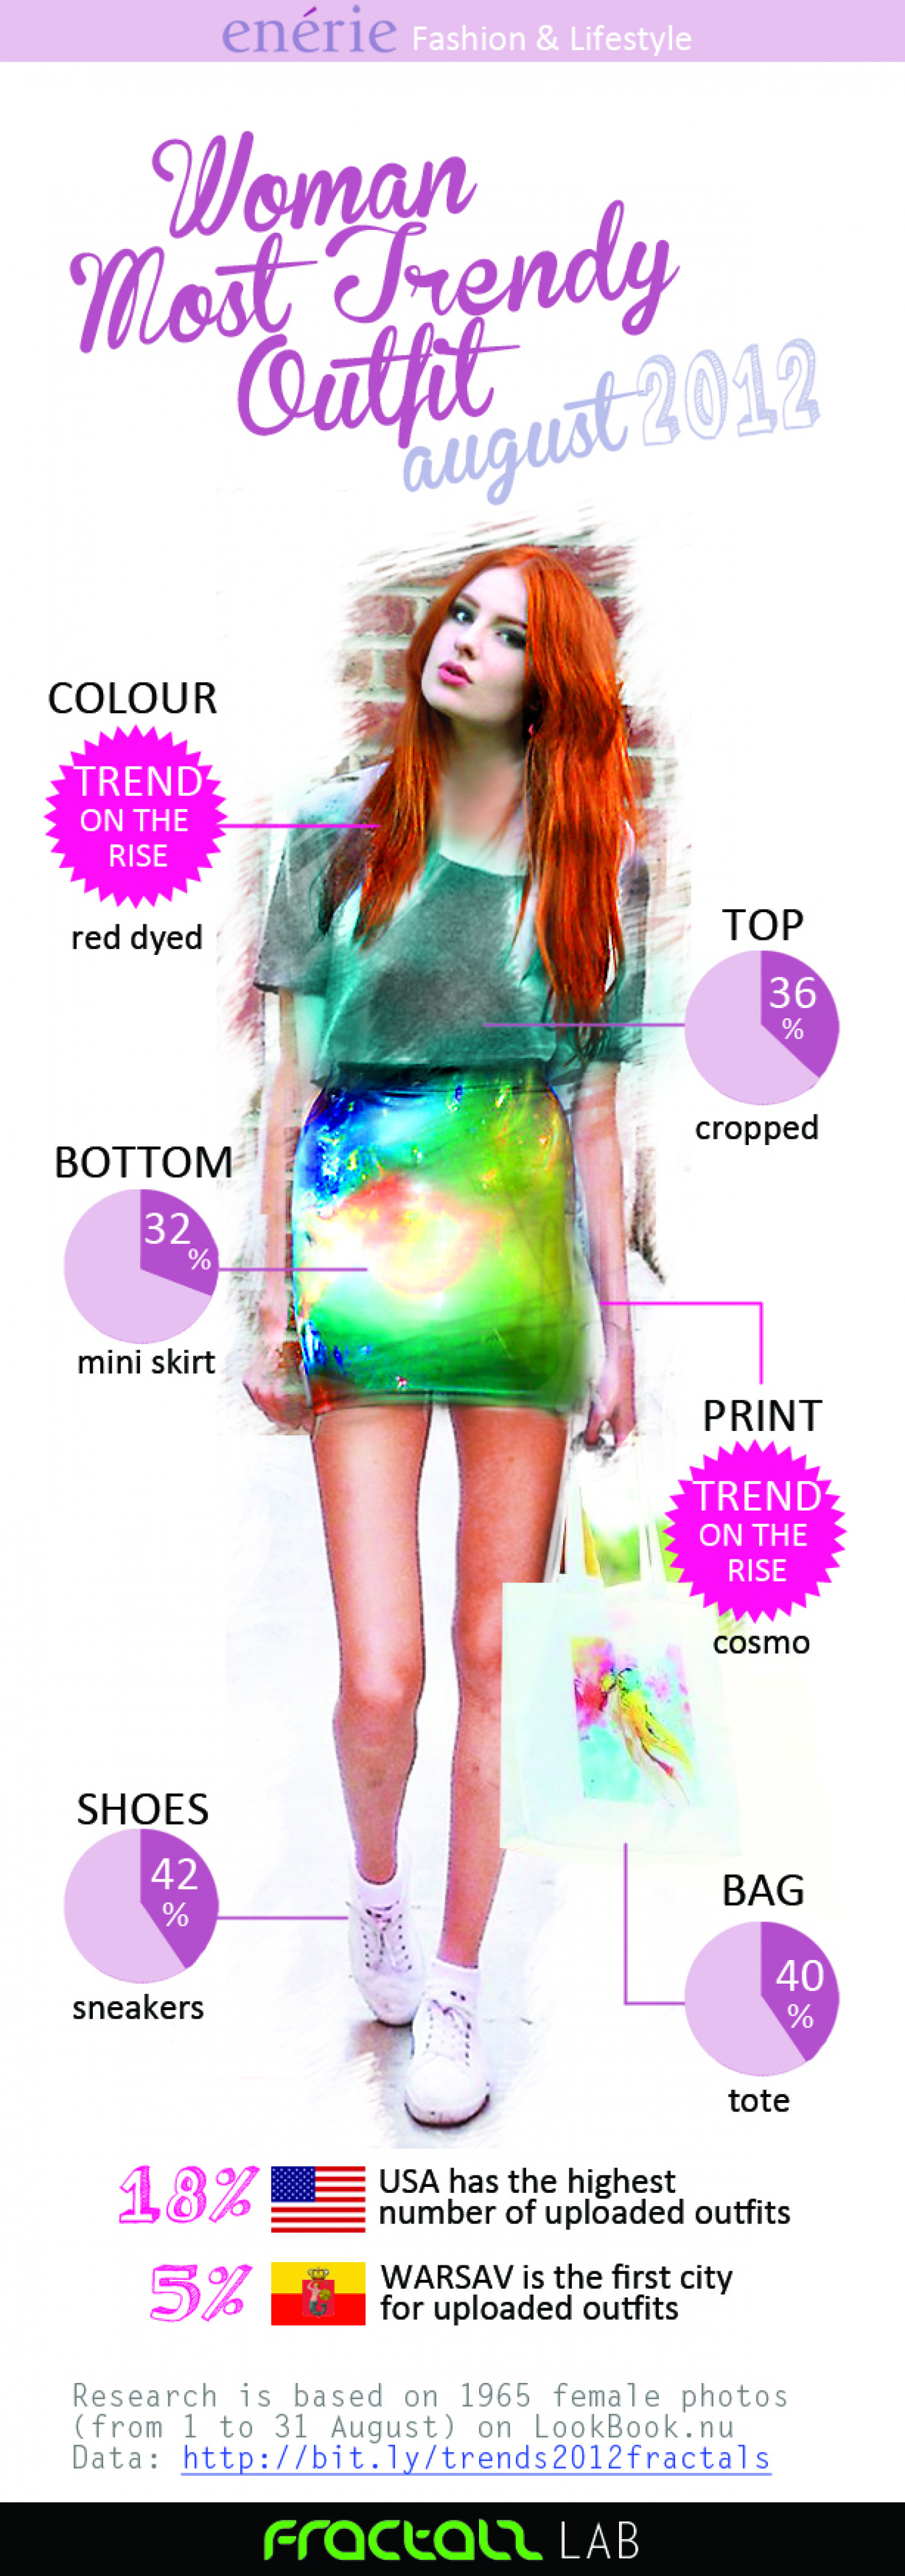 Woman Most Trendy Outfit August 2012 Infographic